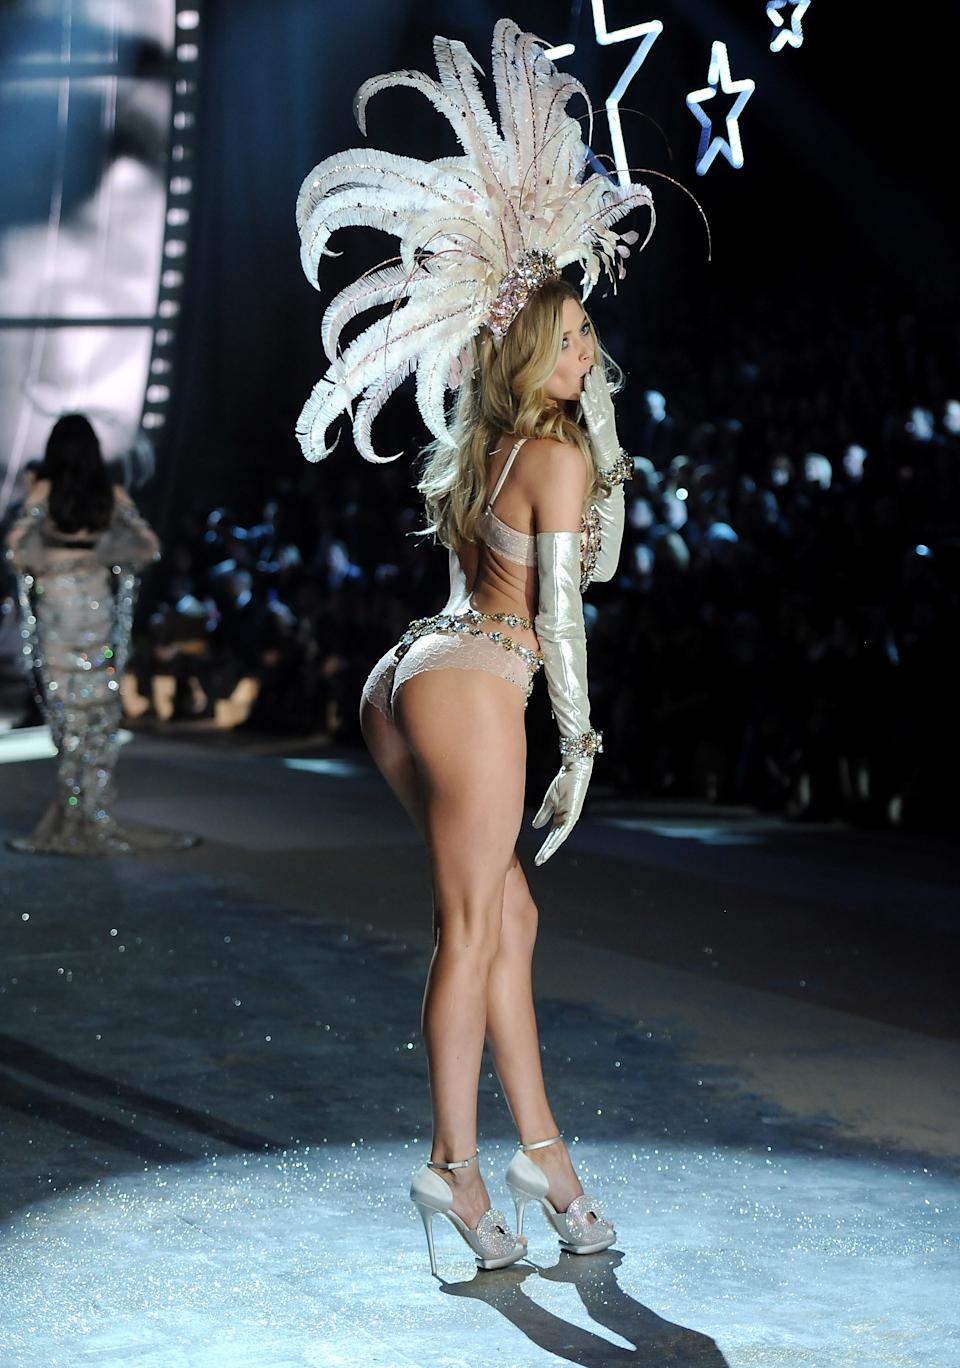 Model Doutzen Kroes walks the runway during the 2012 Victoria's Secret Fashion Show on Wednesday Nov. 7, 2012 in New York. The show will be Broadcast on Tuesday, Dec. 4 (10:00 PM, ET/PT) on CBS. (Photo by Evan Agostini/Invision/AP)